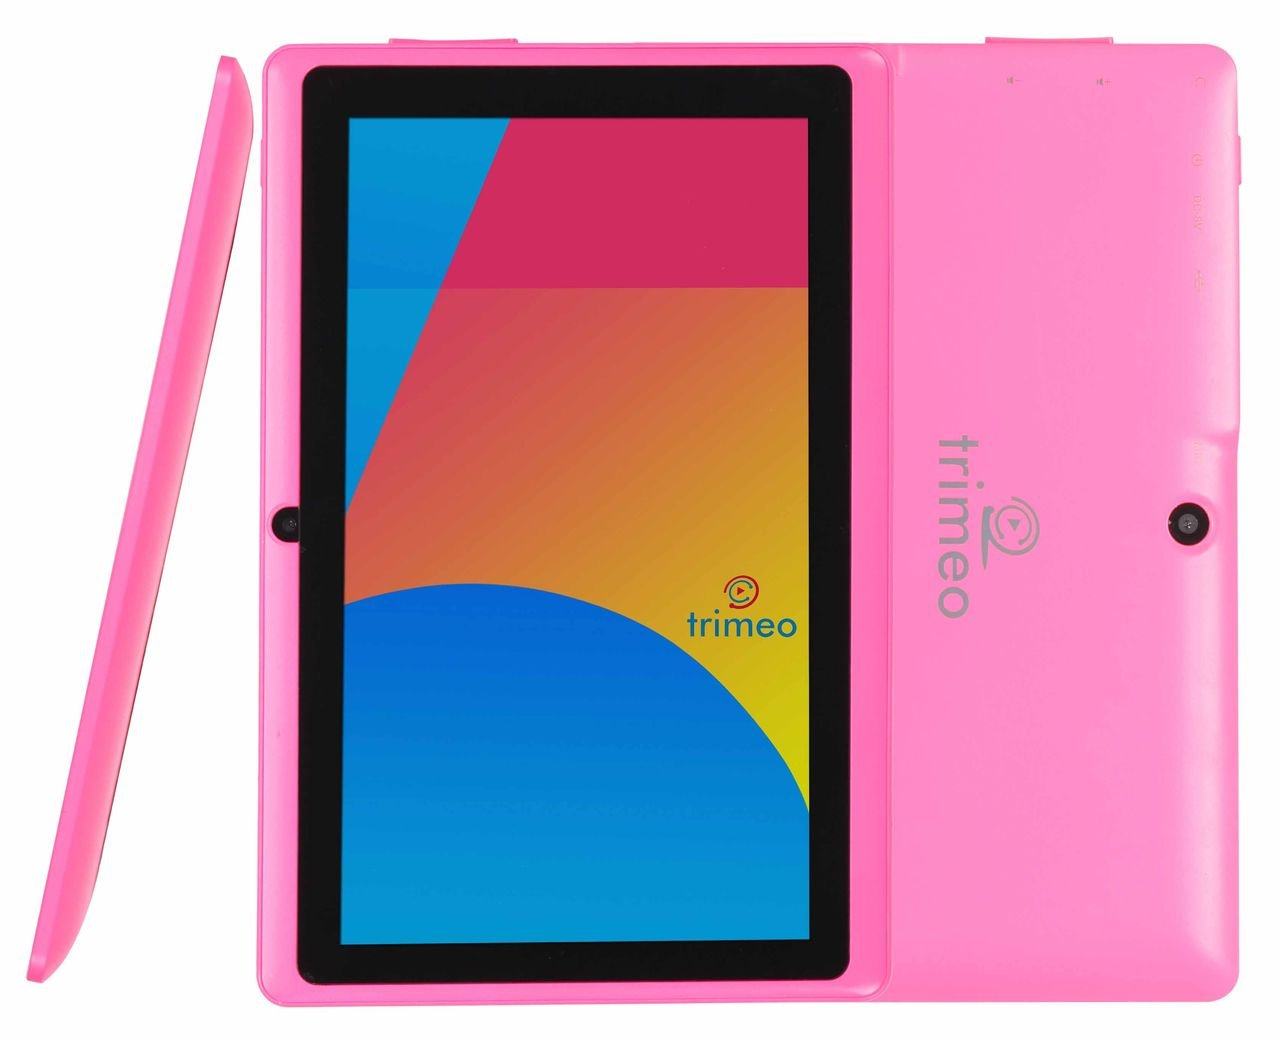 70% OFF   QUAD CORE   Trimeo 7  8GB HD 1024 X 600   2015 MODEL   Android 4.4.2 KITKAT (ANDROID 5.0 LOLLIPOP MANUAL UPDATE INCLUDED)   Tablet PC   Silicone Protection   Dual Camera   WiFi   Supports Google PLAYSTORE Youtube, Netflix, BBC iPlayer, Games (Pink)Customer reviews and more news